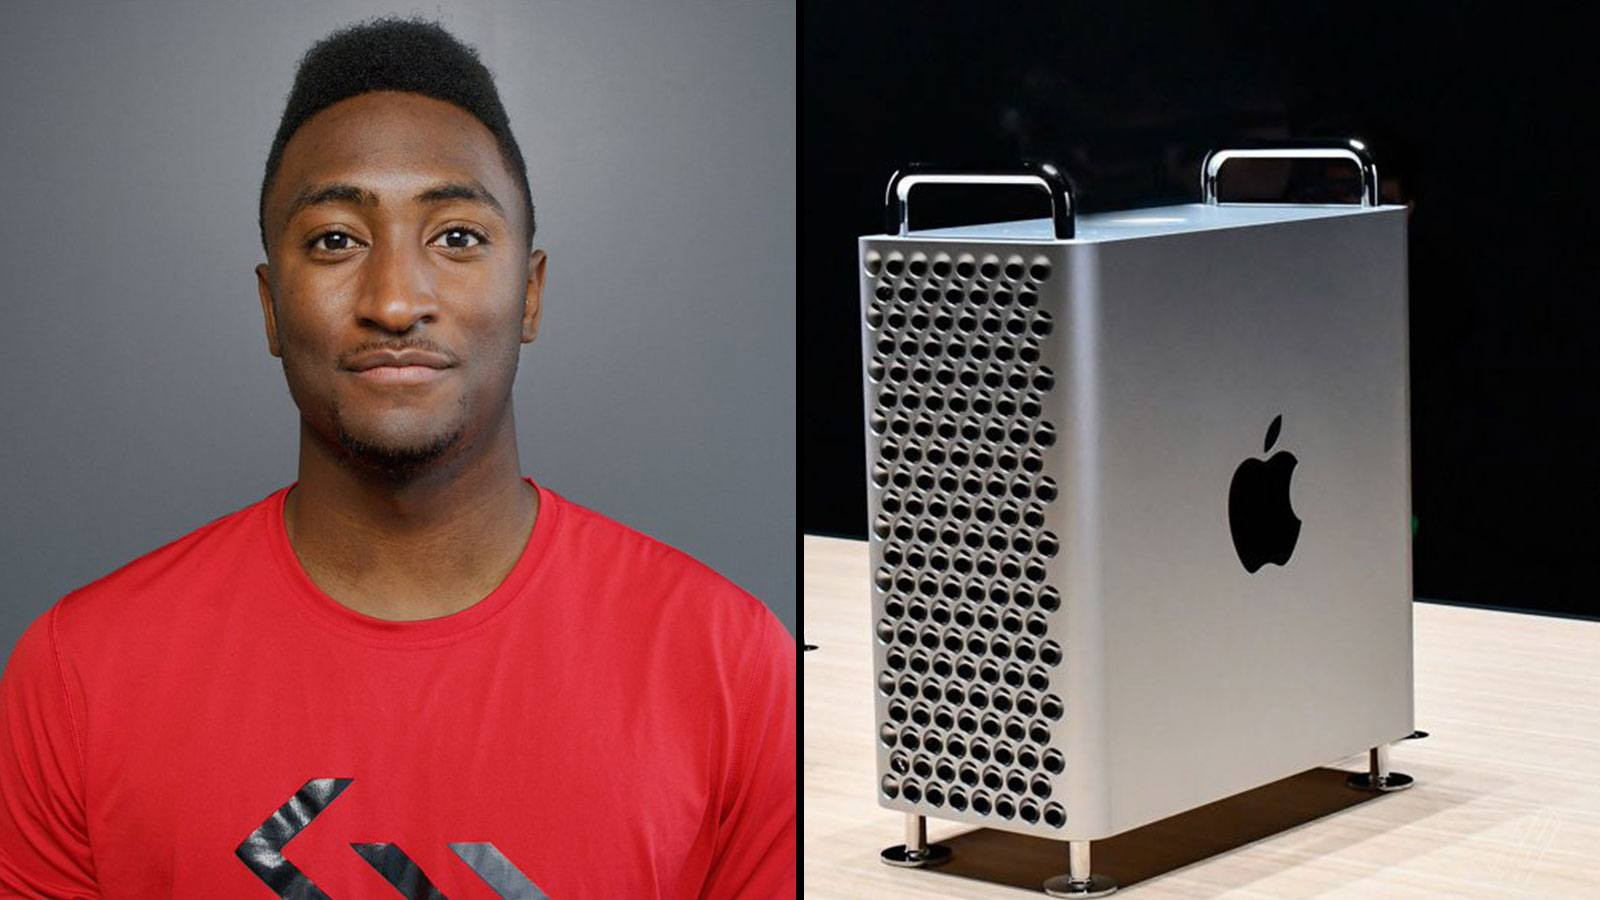 Marques Brownlee Apple Mac Pro